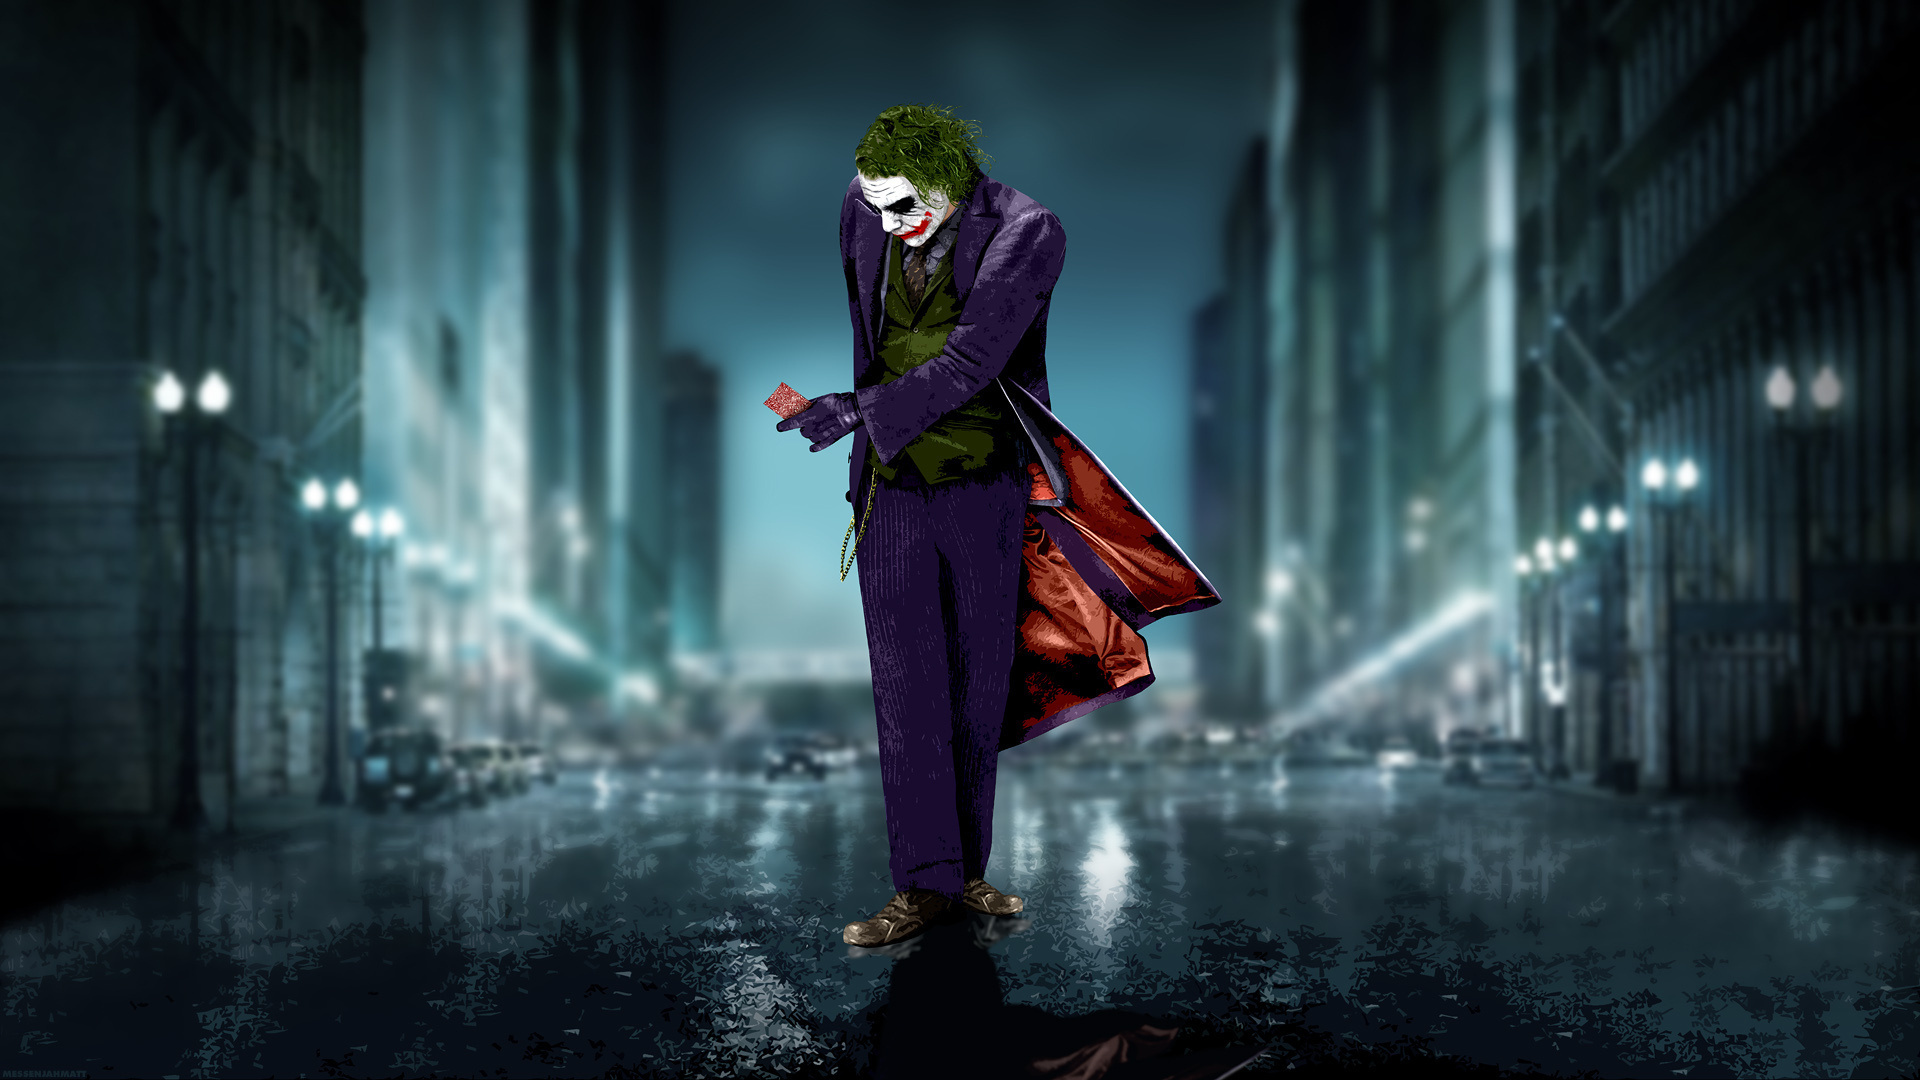 46 Joker Wallpaper For Windows On Wallpapersafari